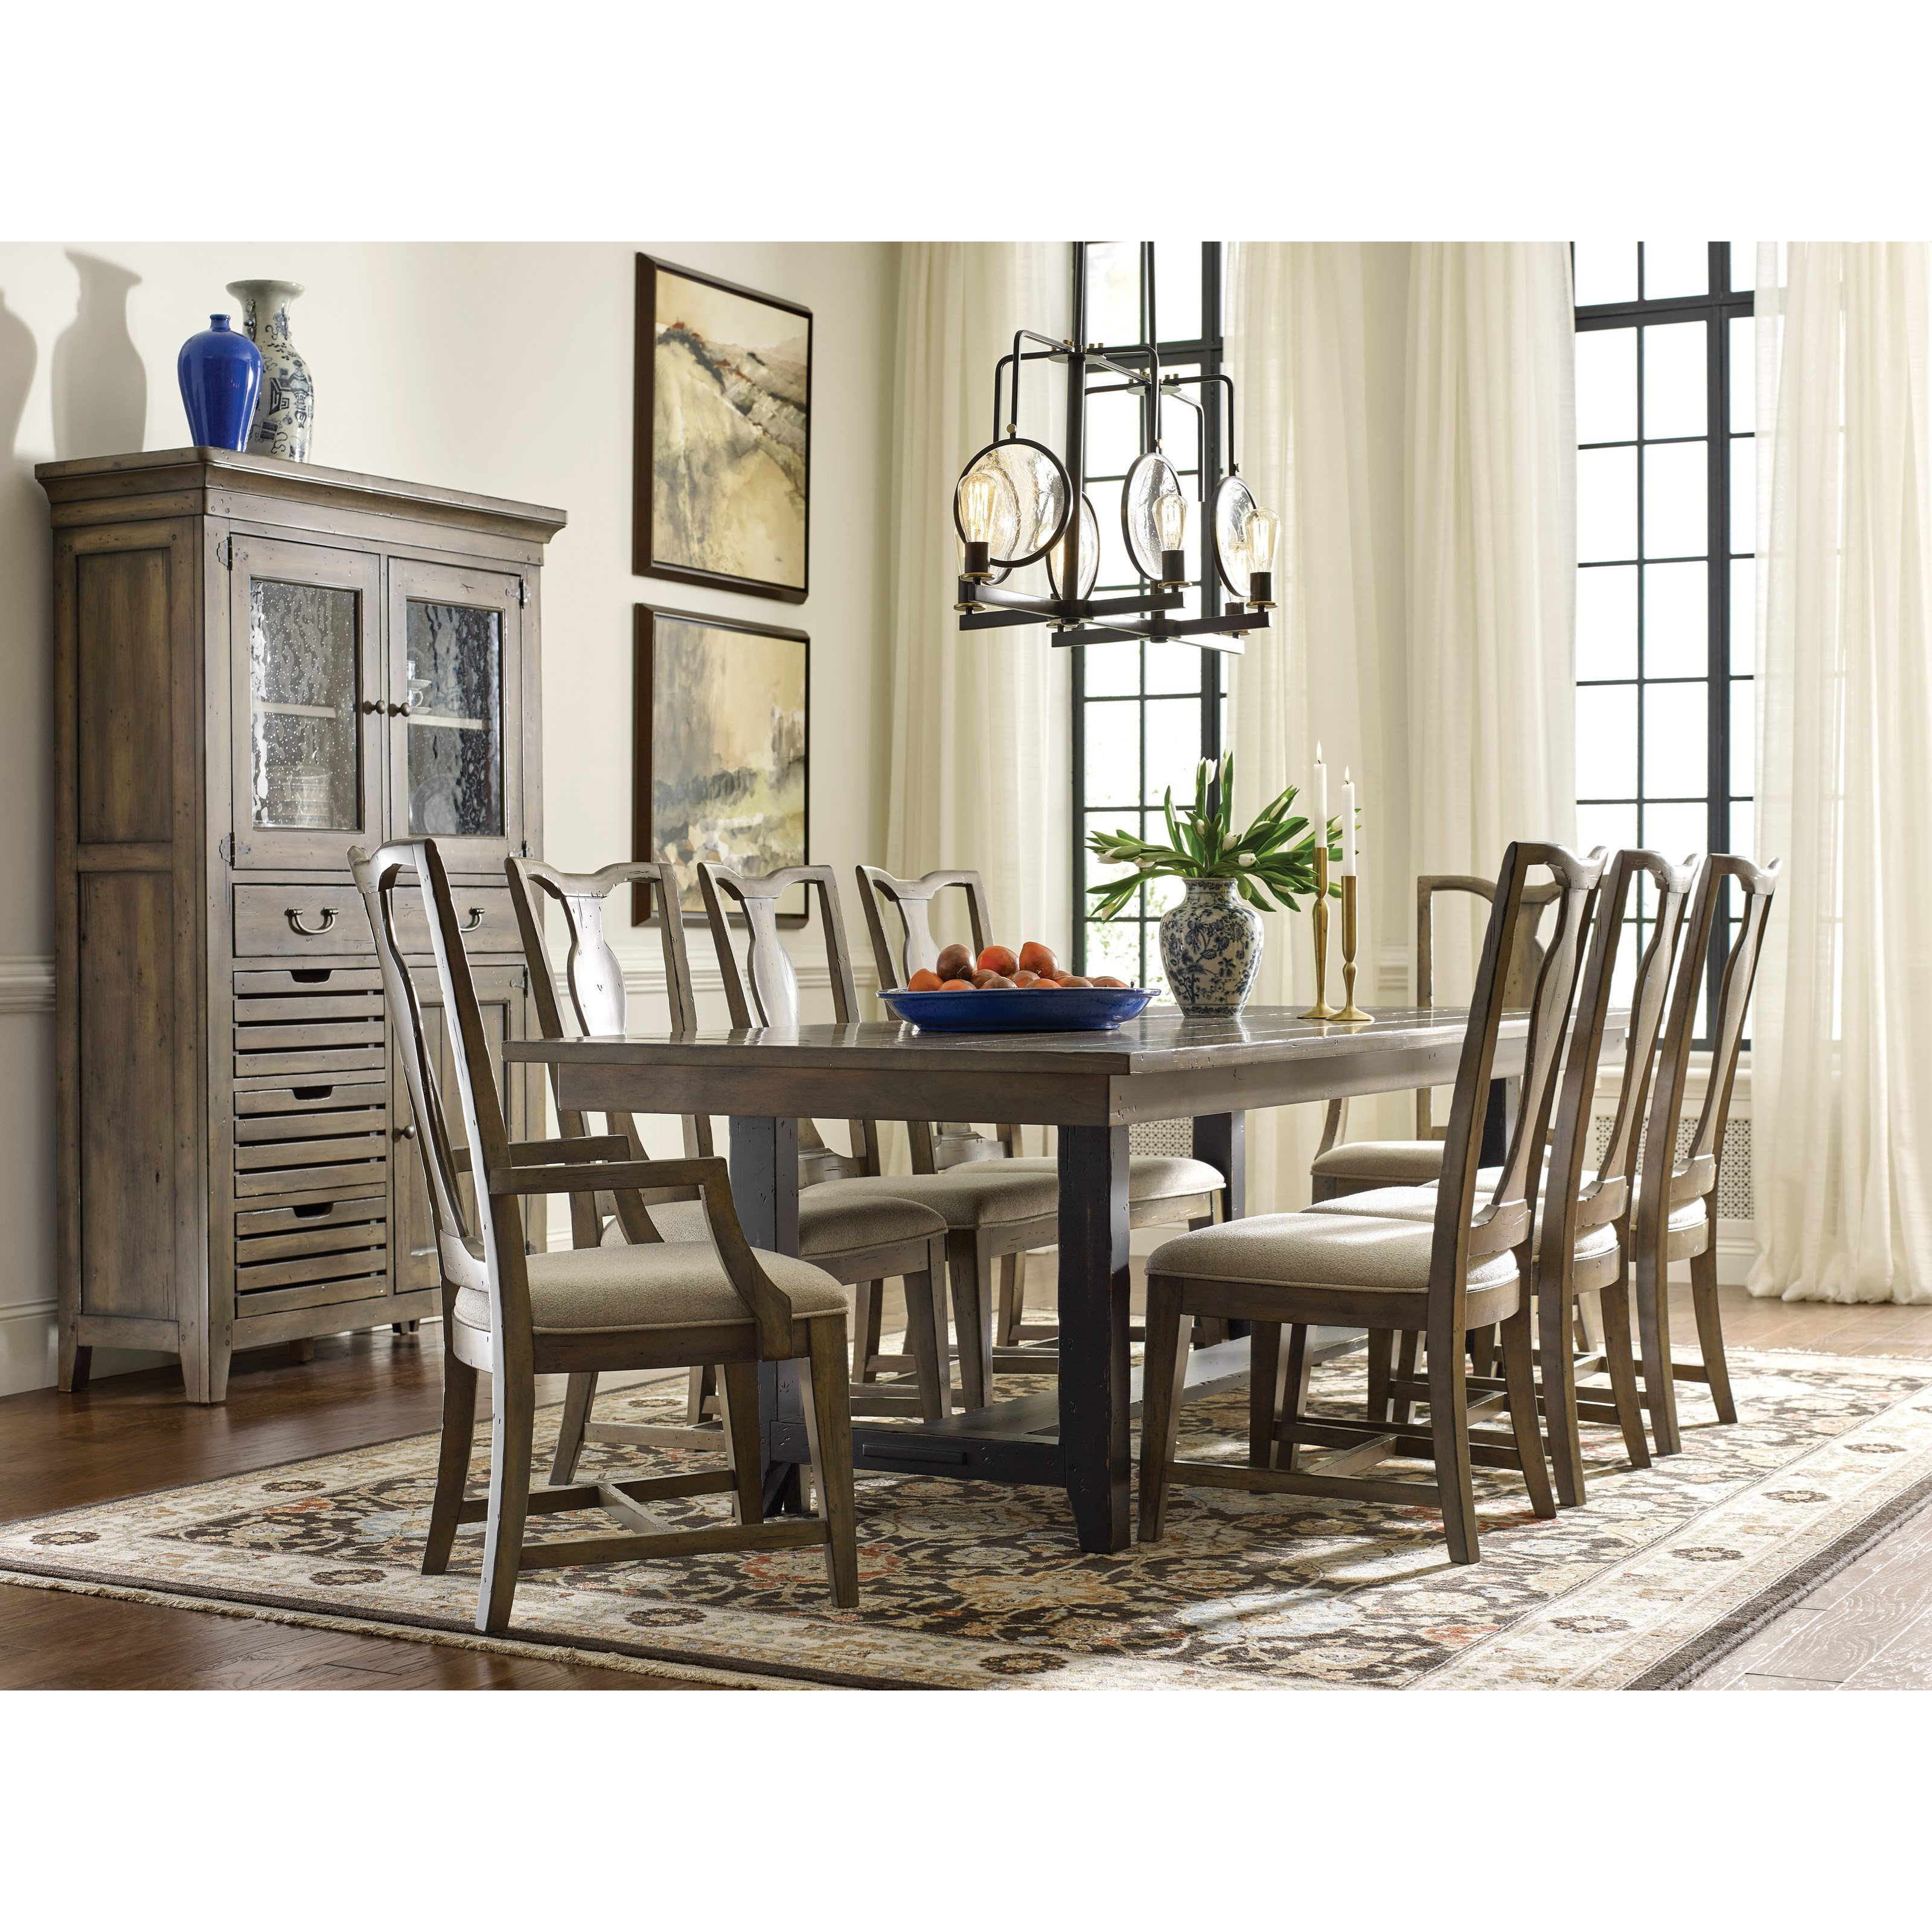 Mill House Formal Dining Room Group by Kincaid Furniture at Jacksonville Furniture Mart